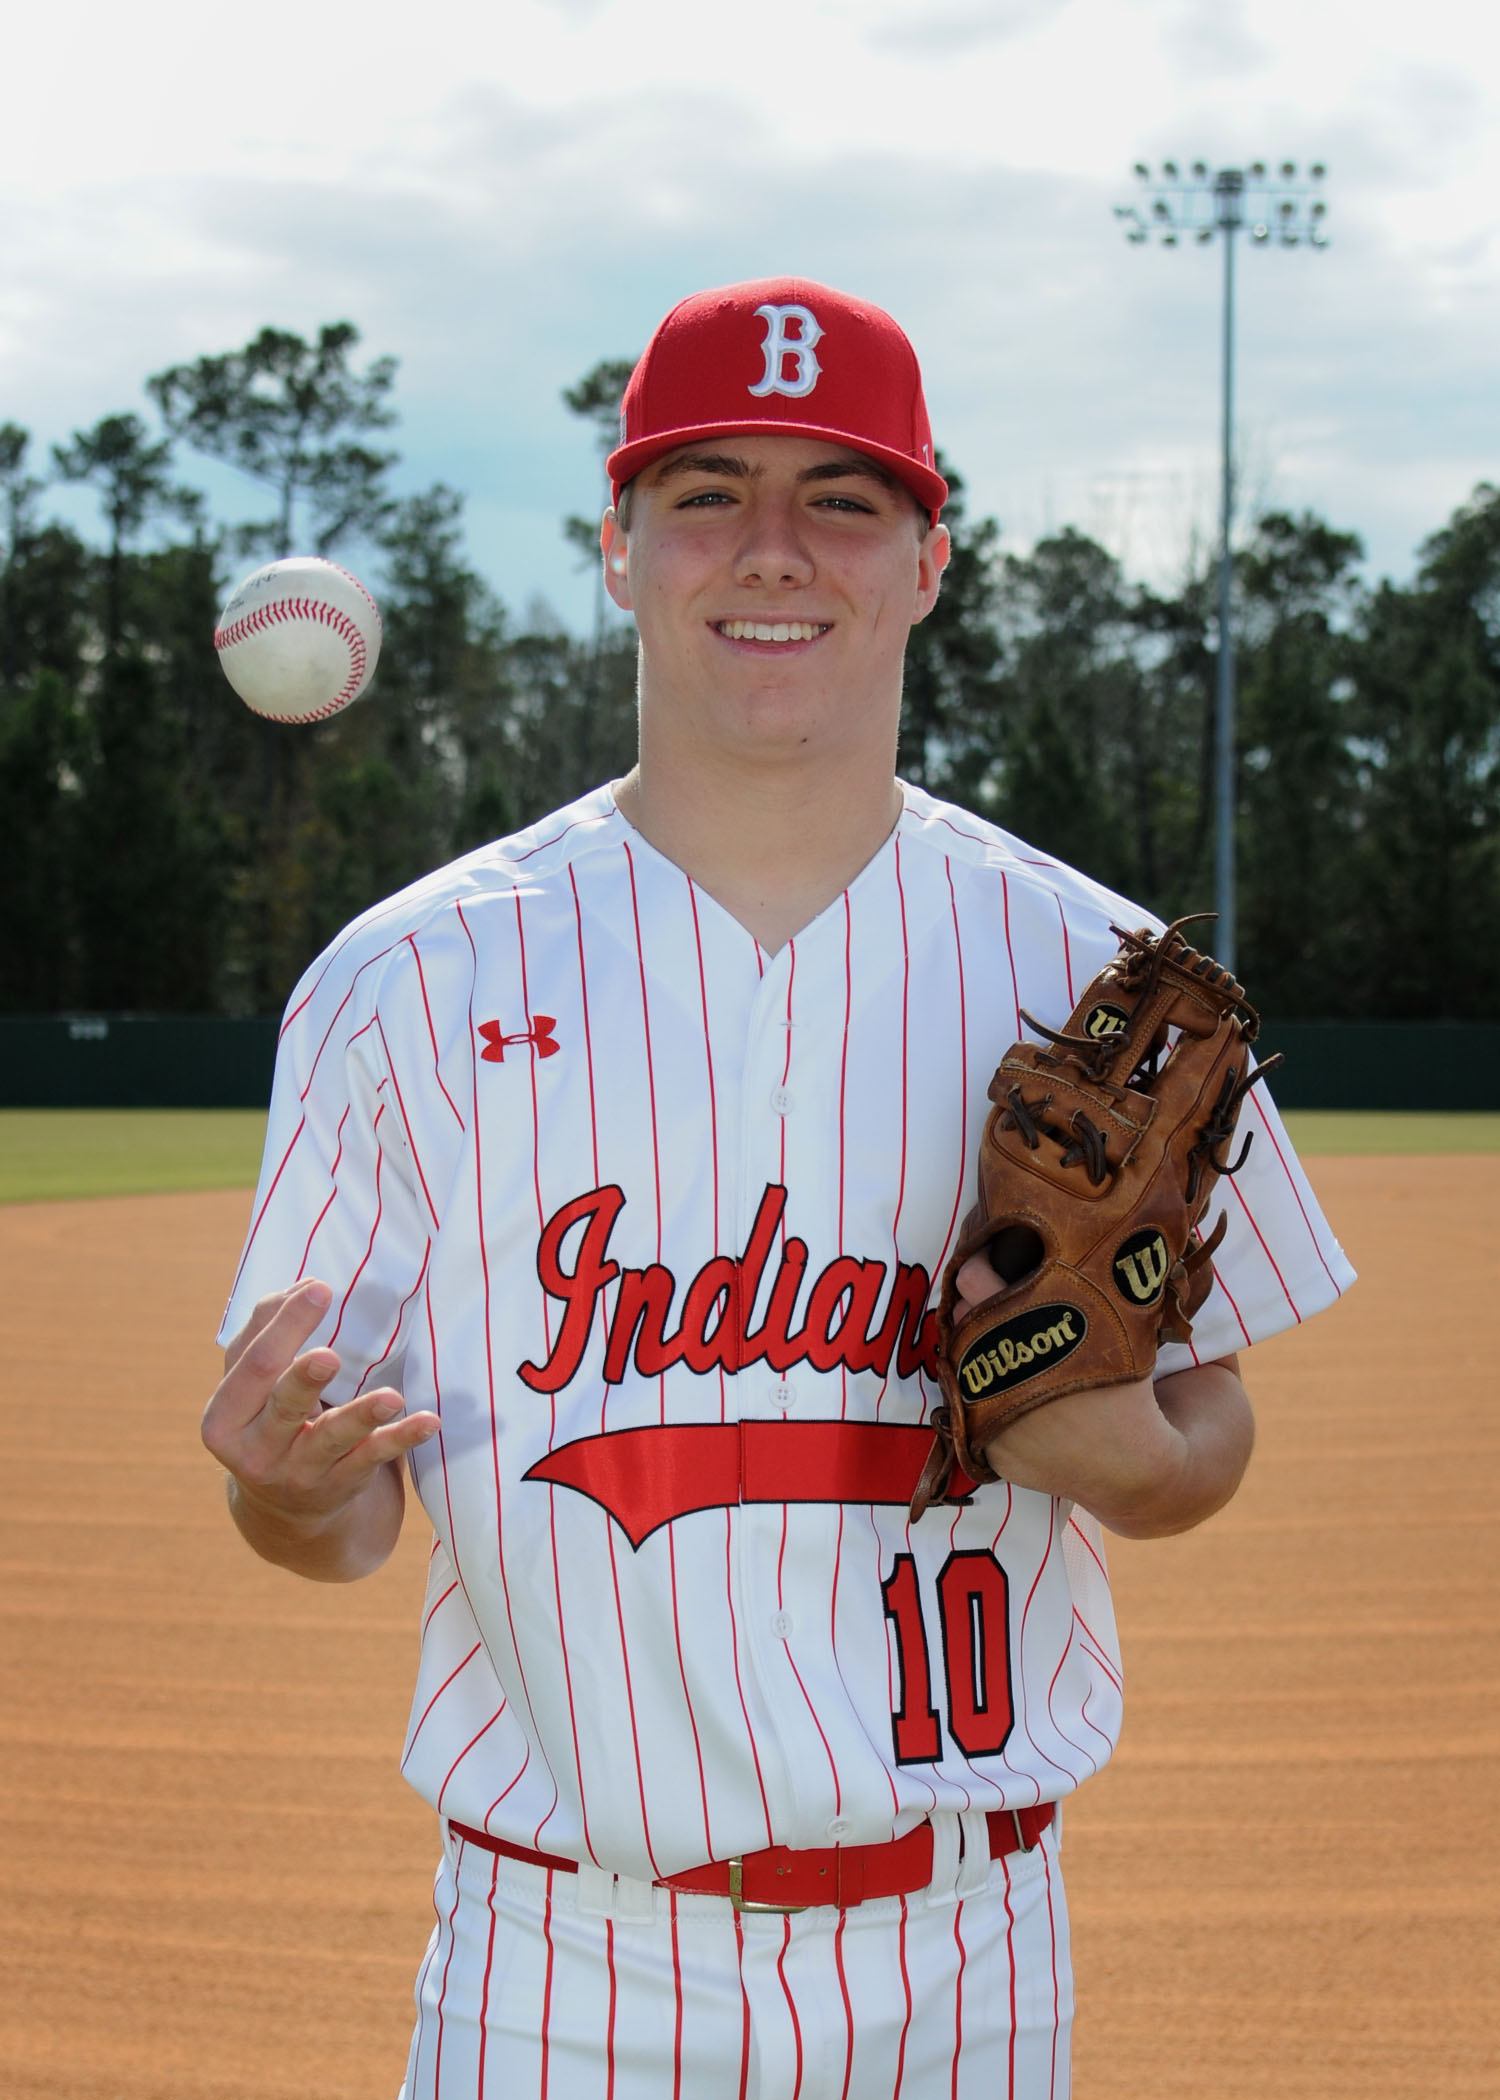 Brodie King #10 - Name: Brodie KingParents: David and Carva KingBio: Brodie is a four year member of the BHS baseball team. He has one younger brother named Brandon and he also played football for the Indians.What BHS Baseball has taught me: Brodie has learned that Hard Work will always pay off in the end.